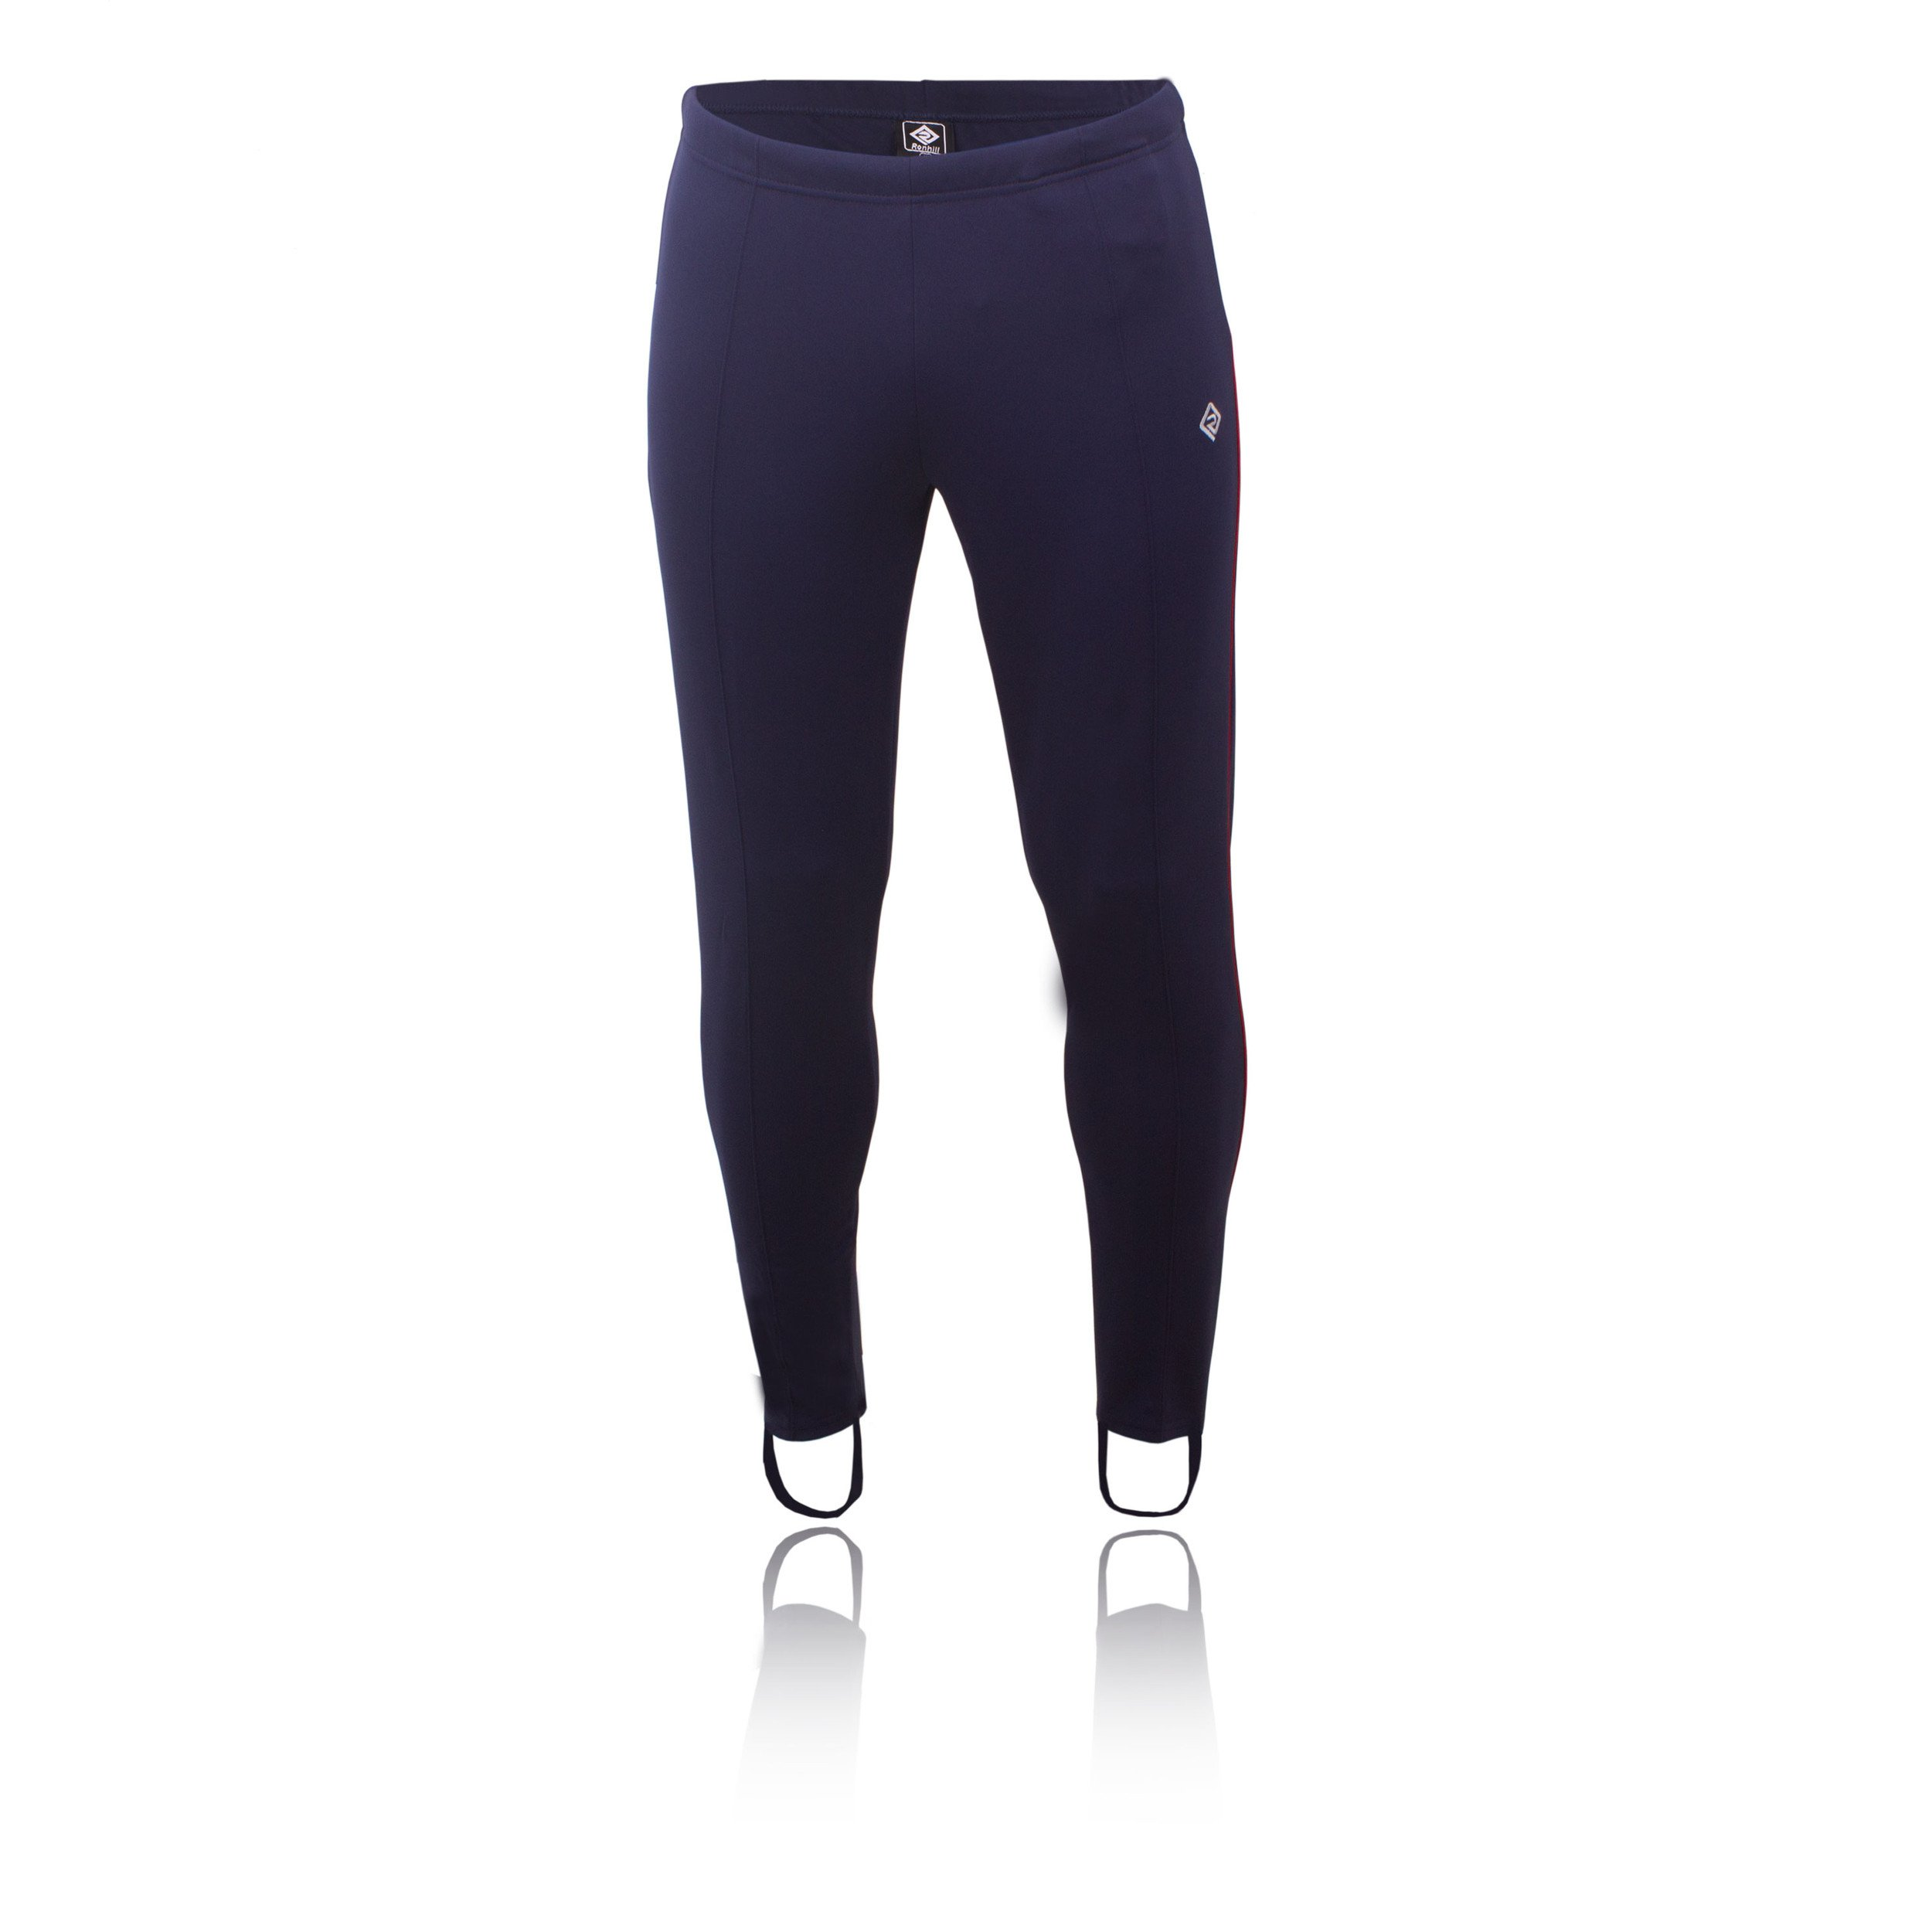 2b6abd83e7949 Best Rated in Men's Running Trousers & Helpful Customer Reviews ...